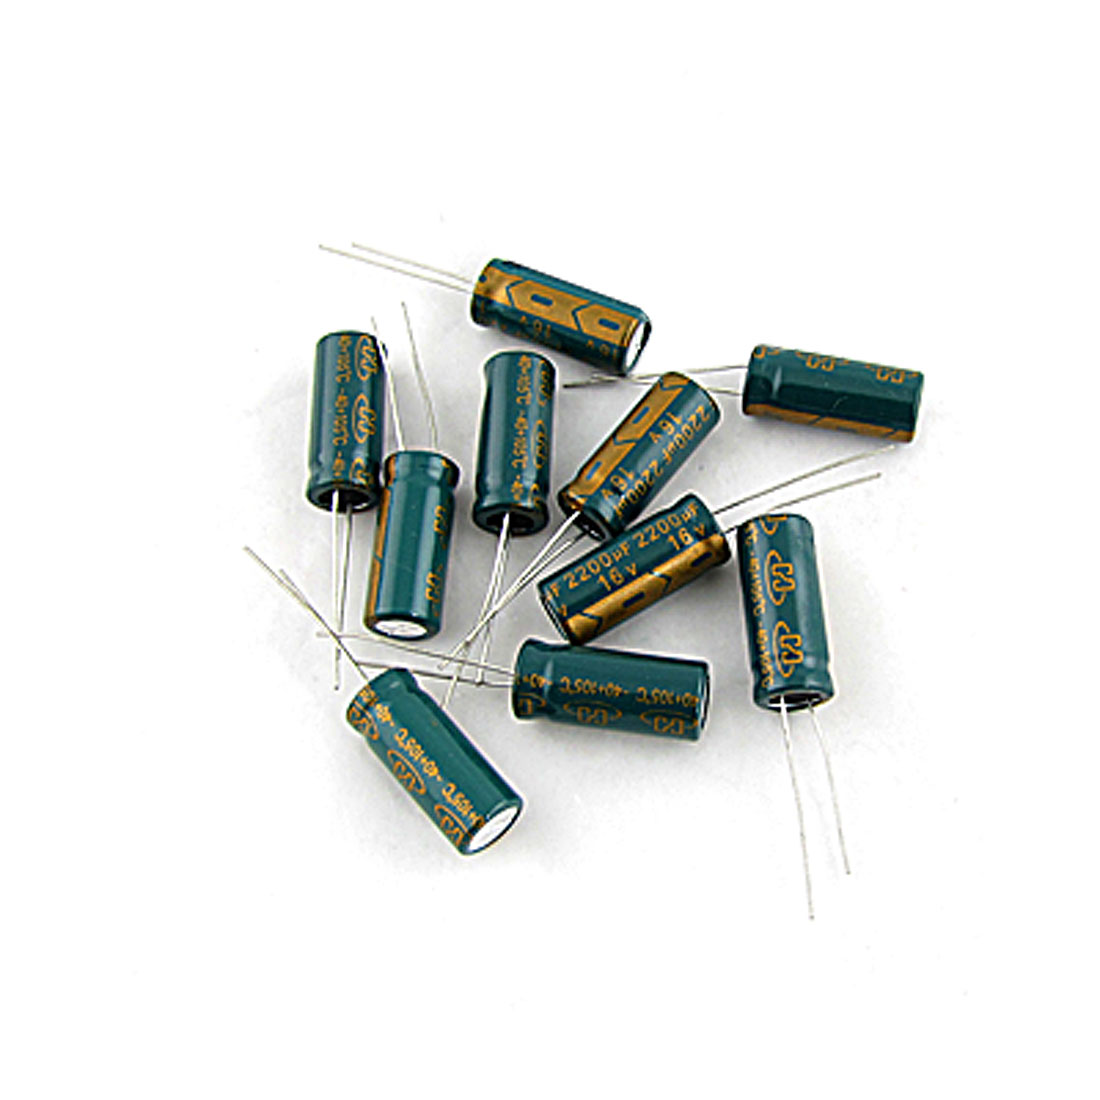 Motherboard Polarized 2200UF 16V Electrolytic Capacitor